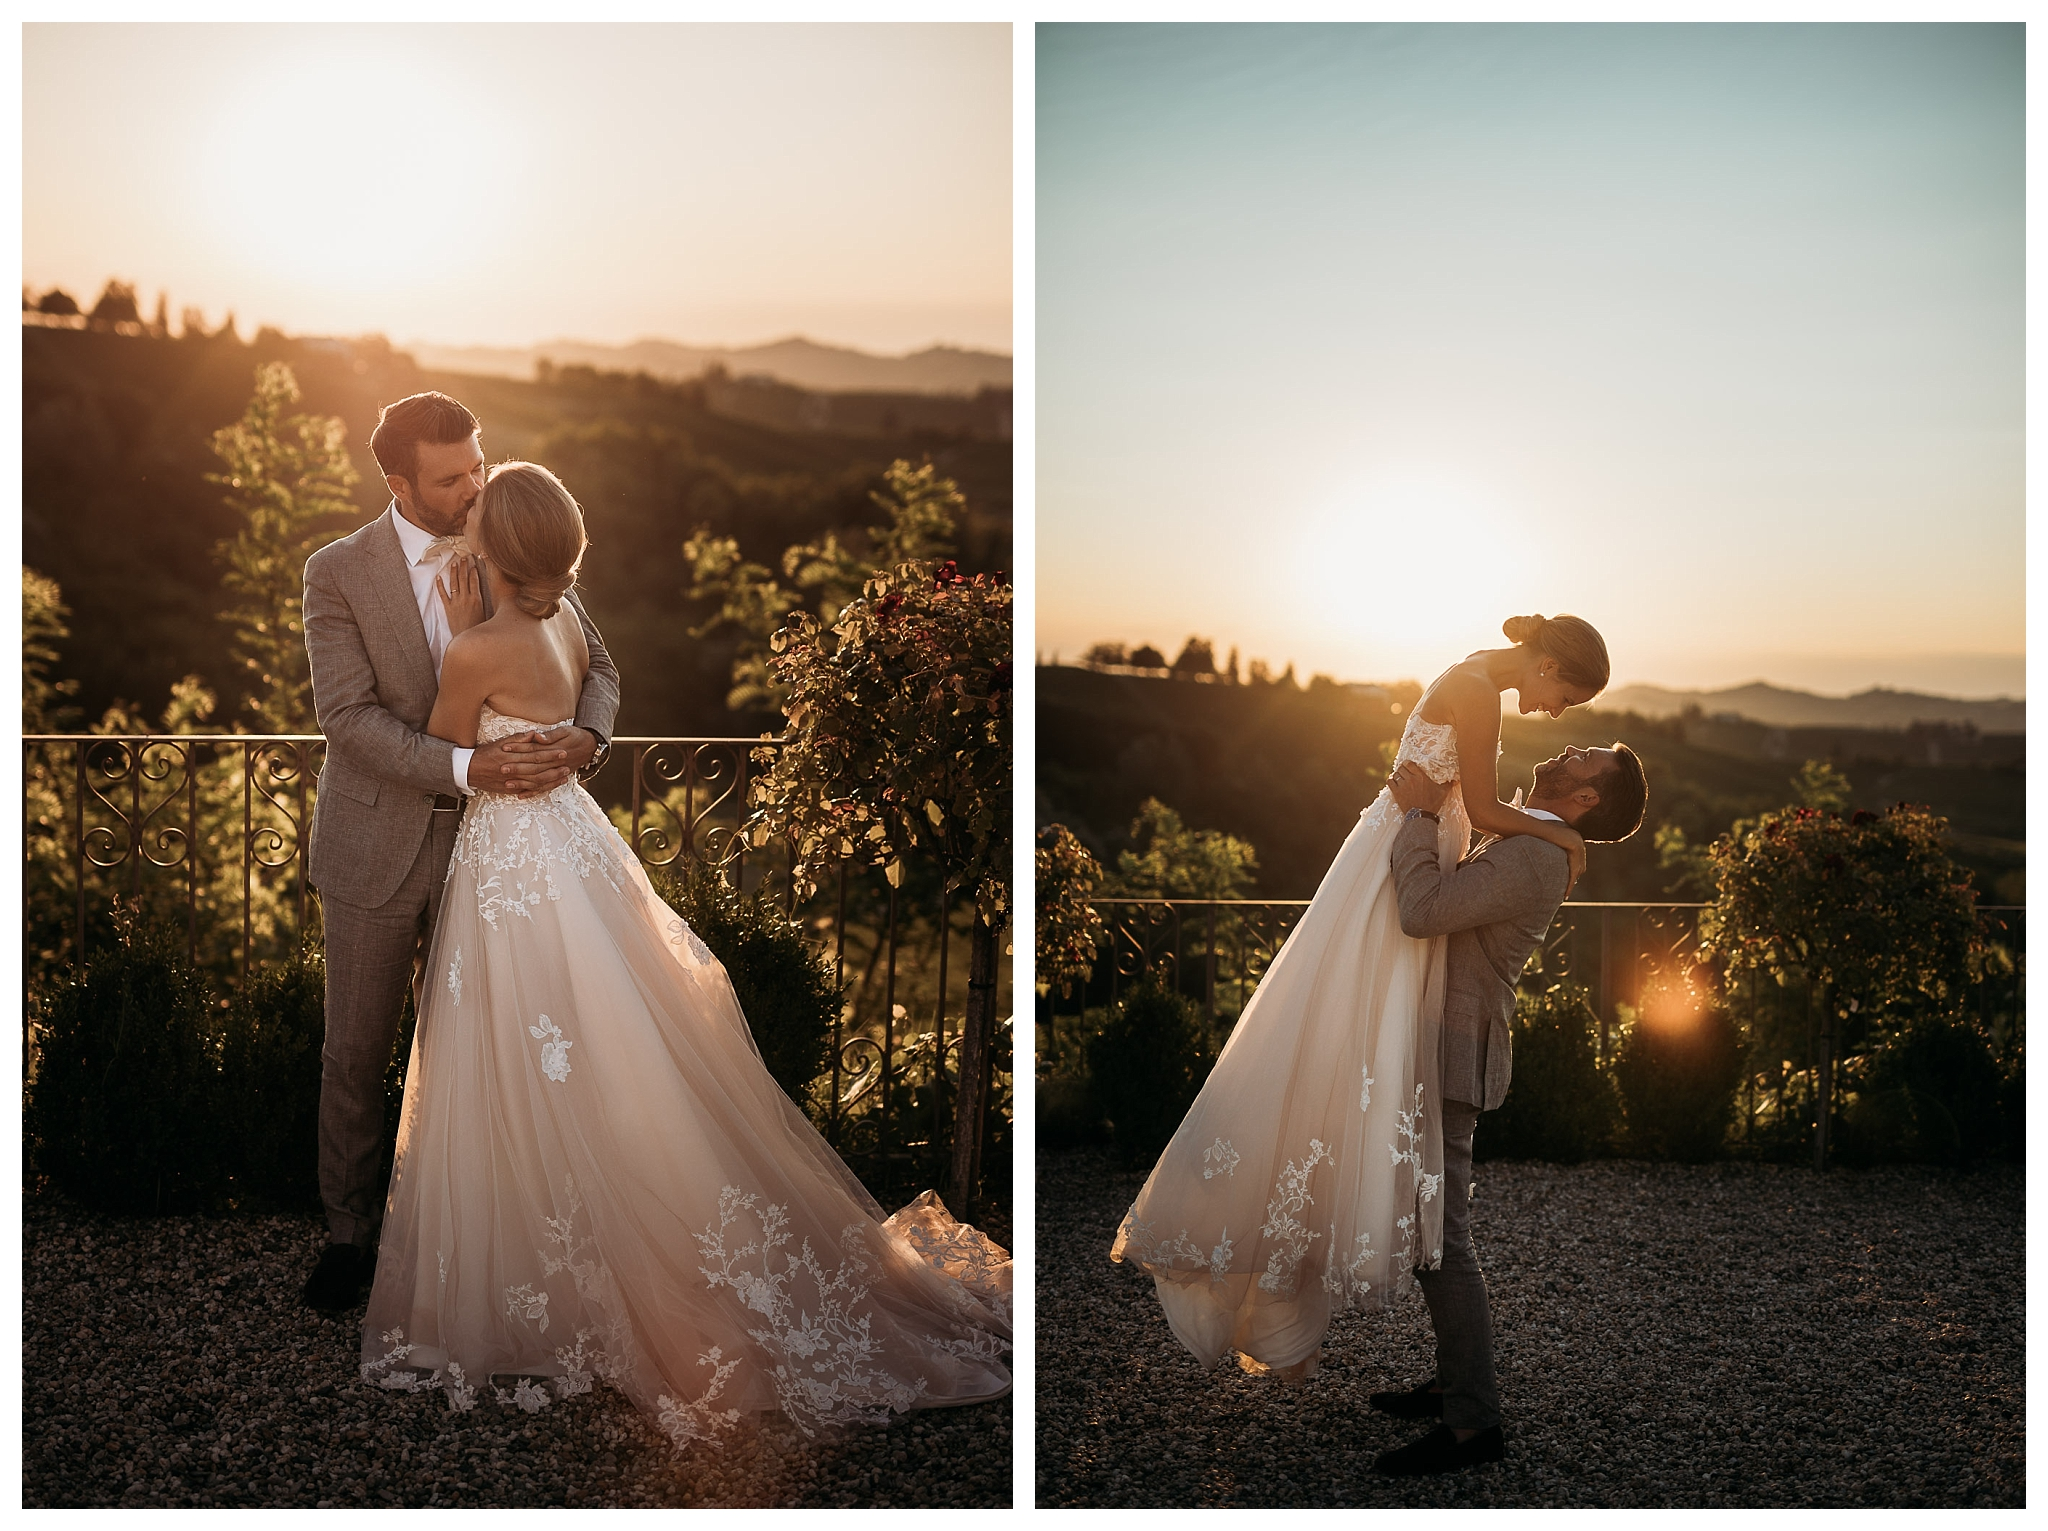 Bride and groom at sunset in Italian countryside